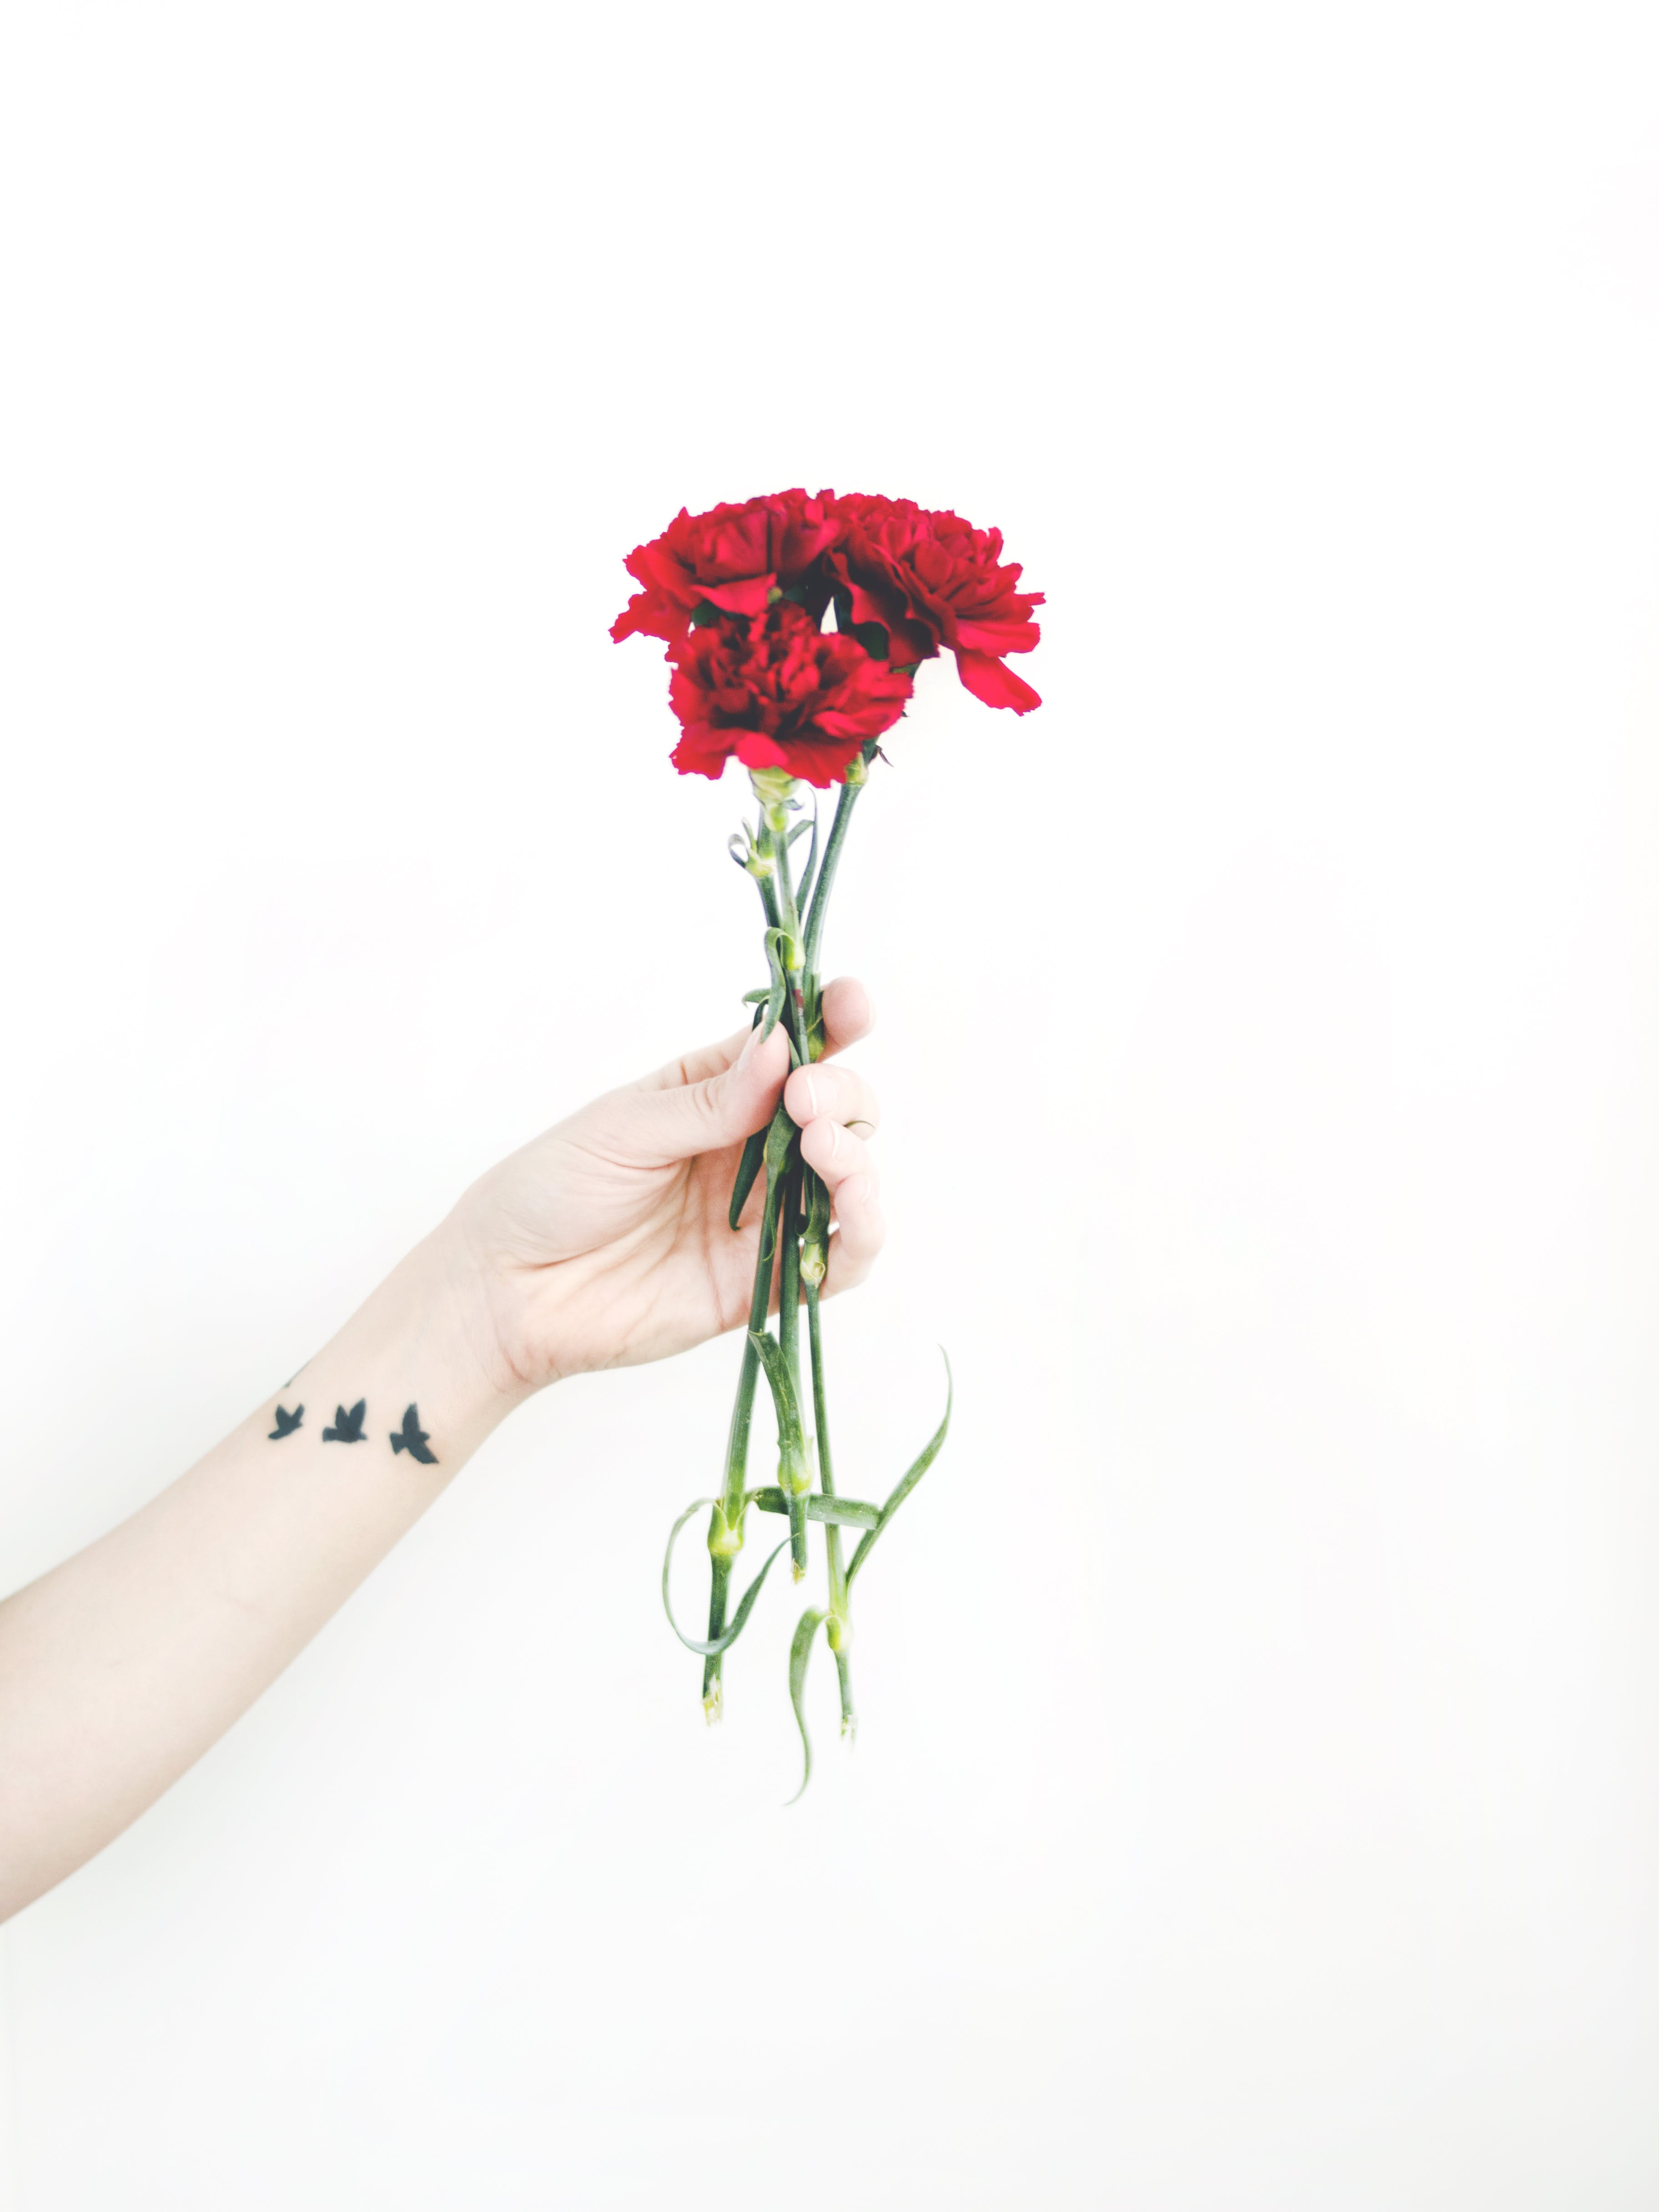 Photo of Person Holding Bouquet of Red Carnations